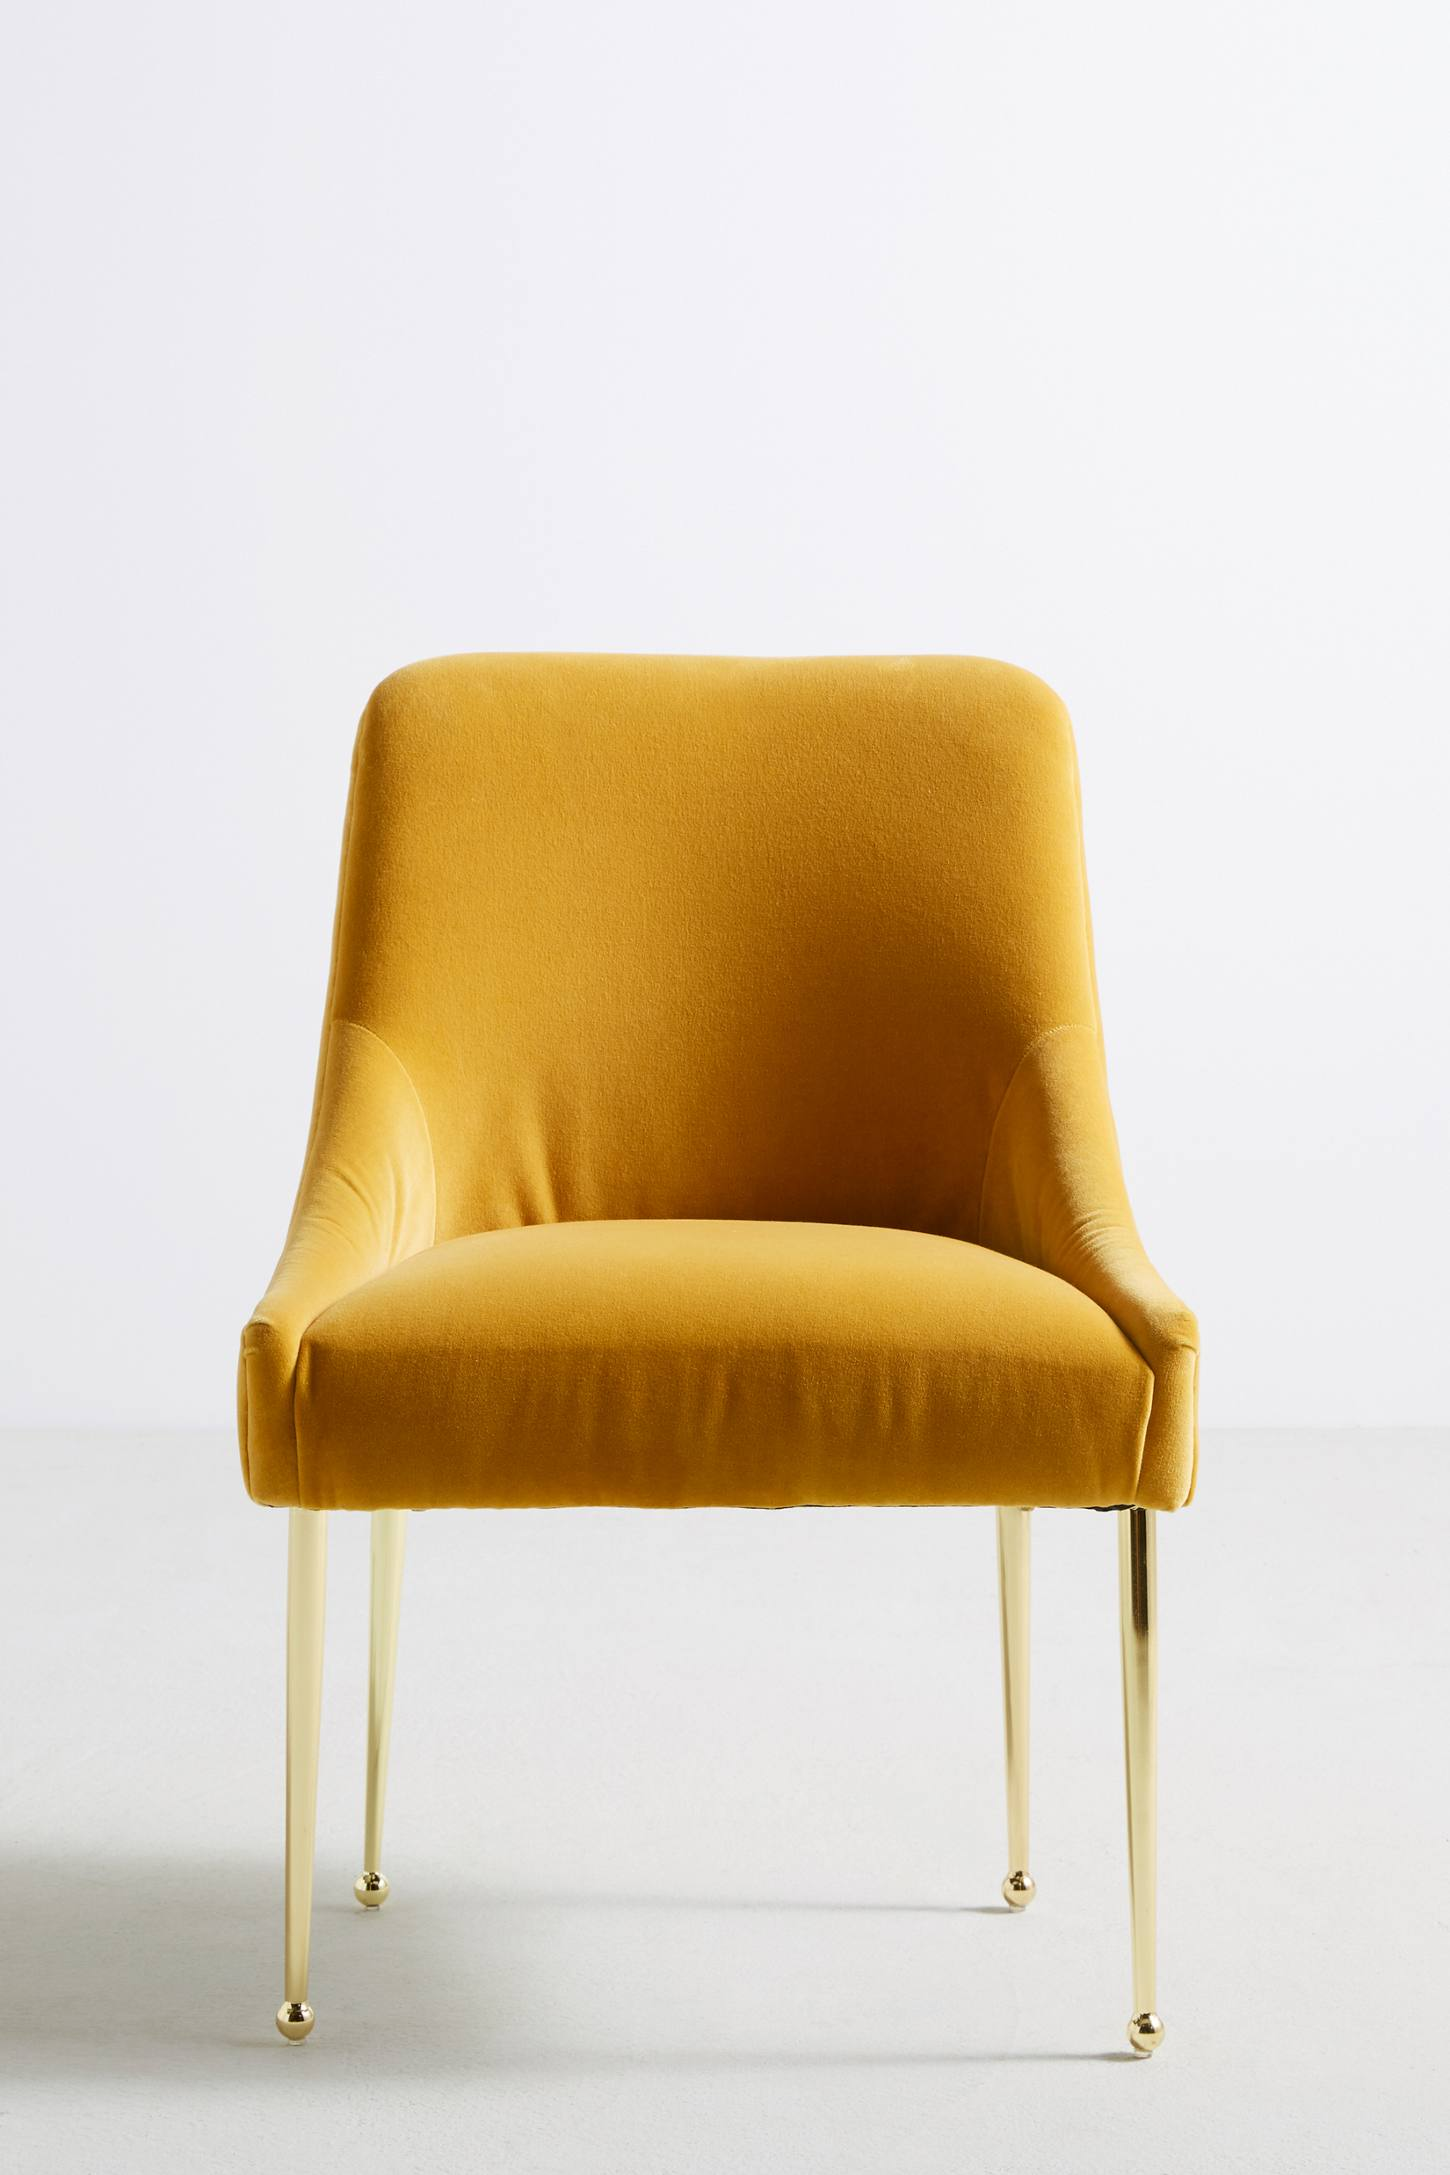 Slide View: 1: Elowen Chair